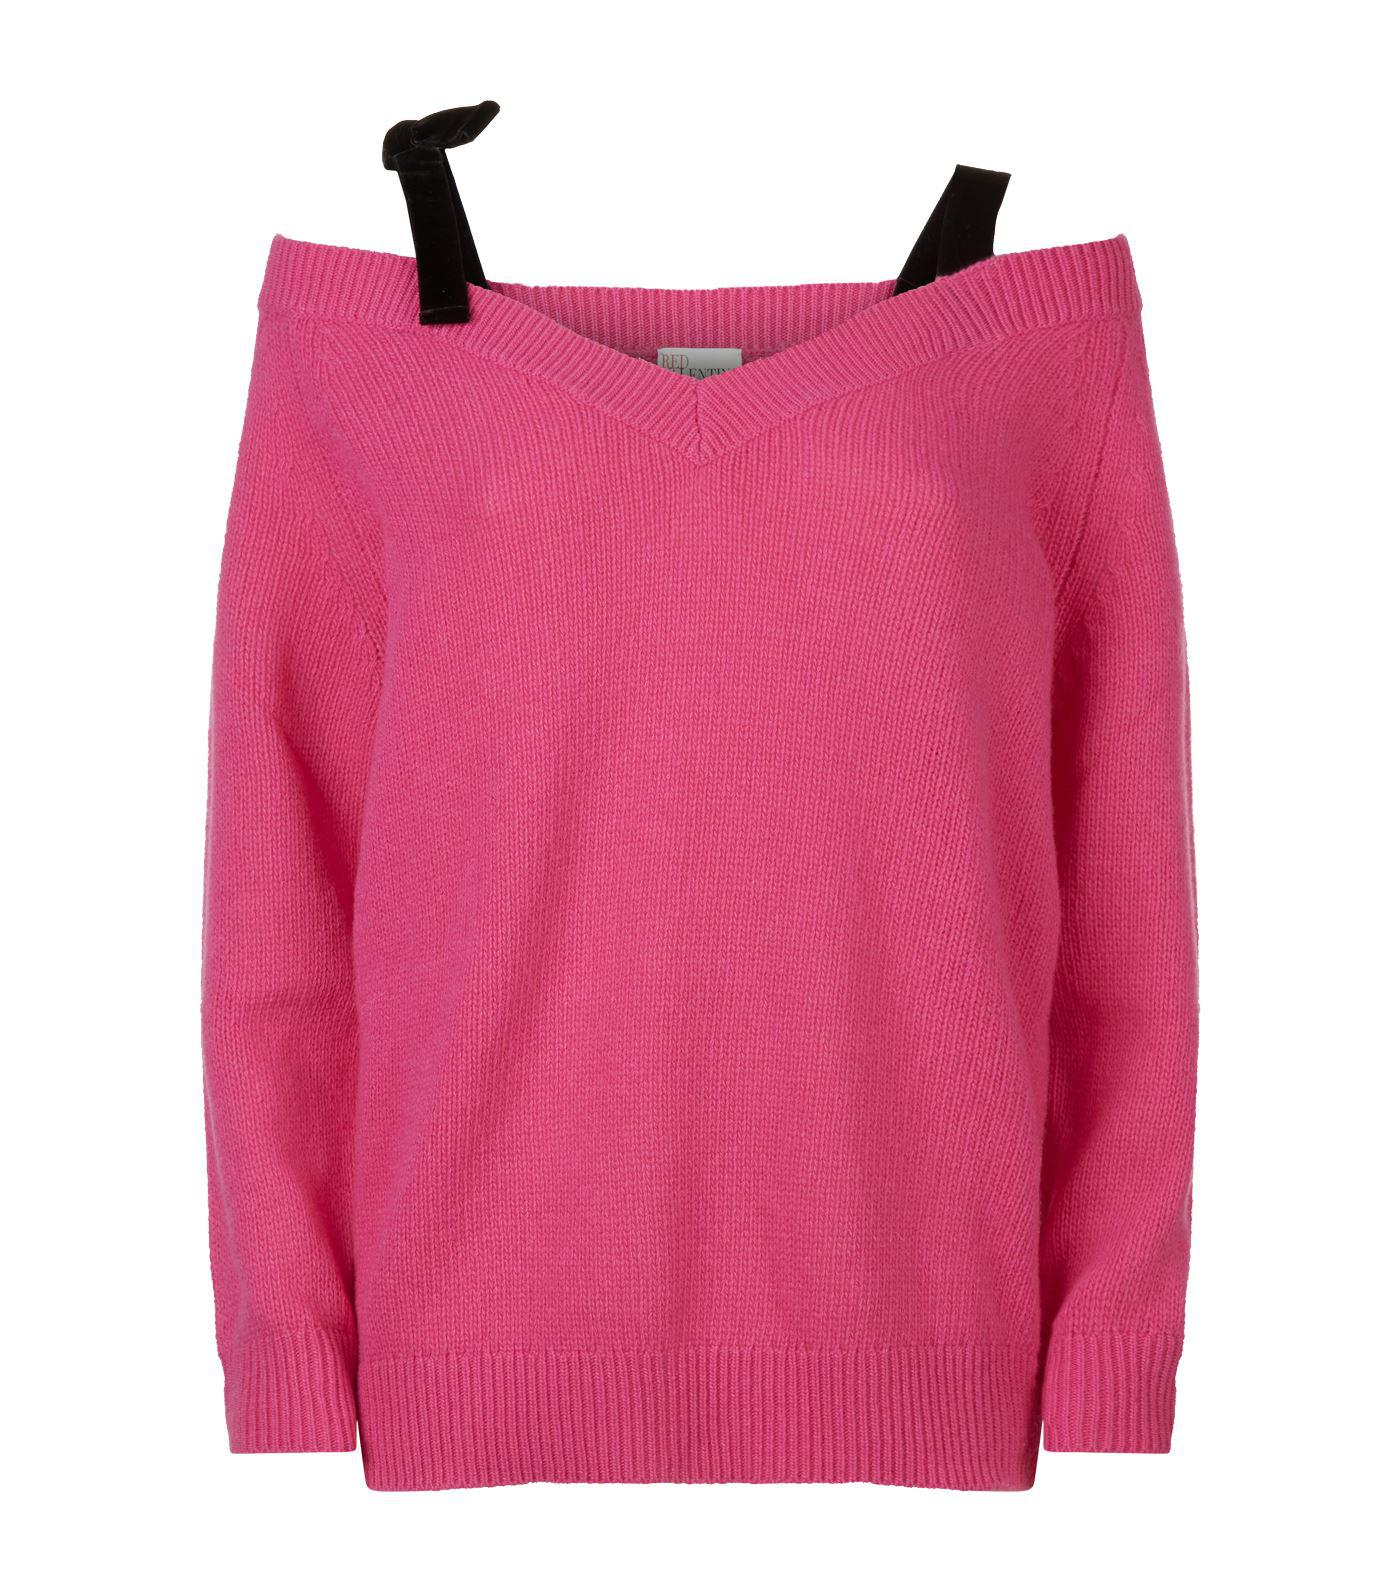 a2a227b9e4 Red Valentino Off-the-shoulder Sweater in Pink - Lyst